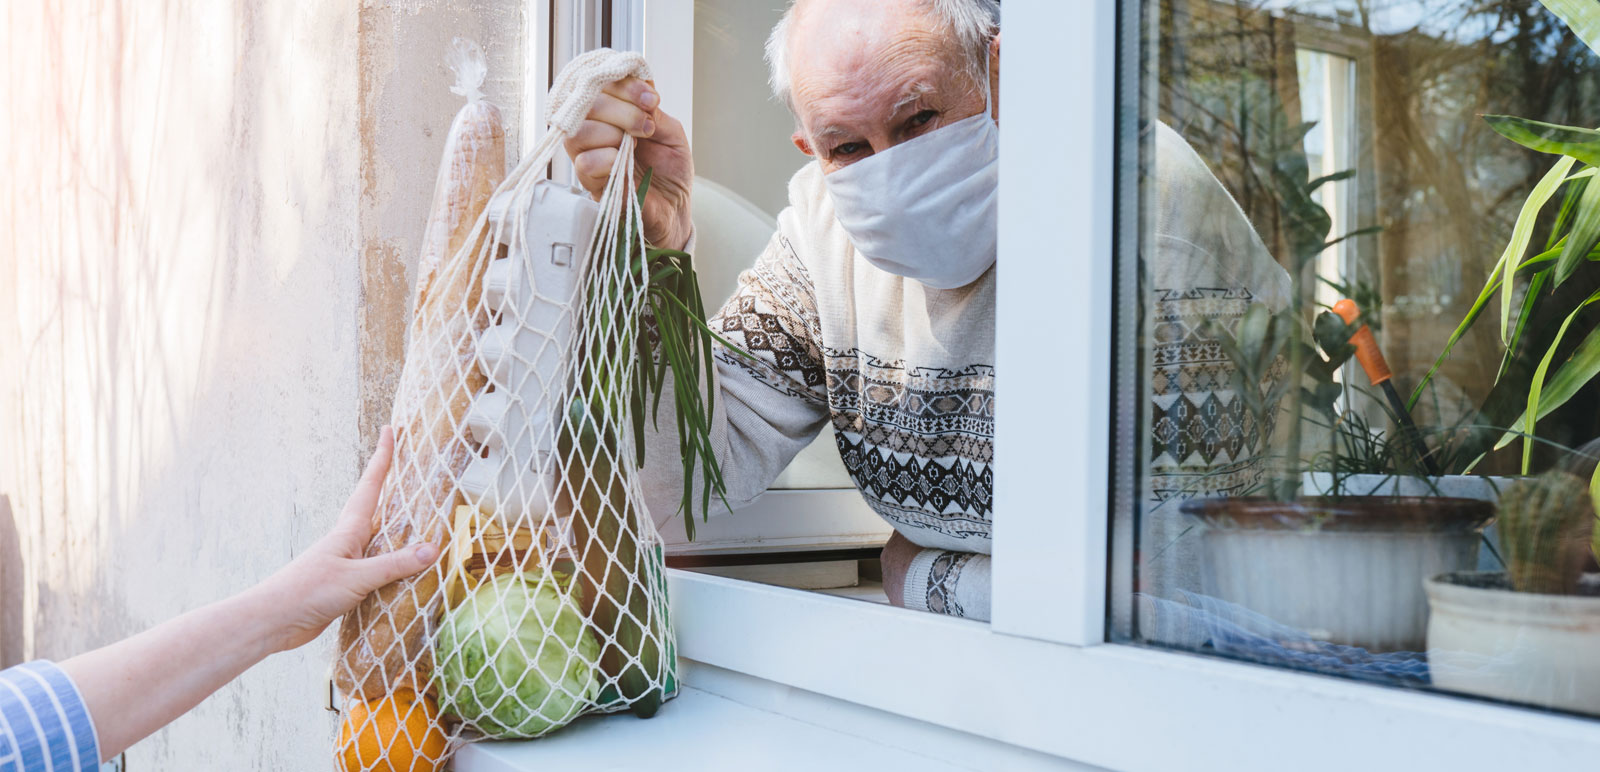 Man in isolation takes groceries through window